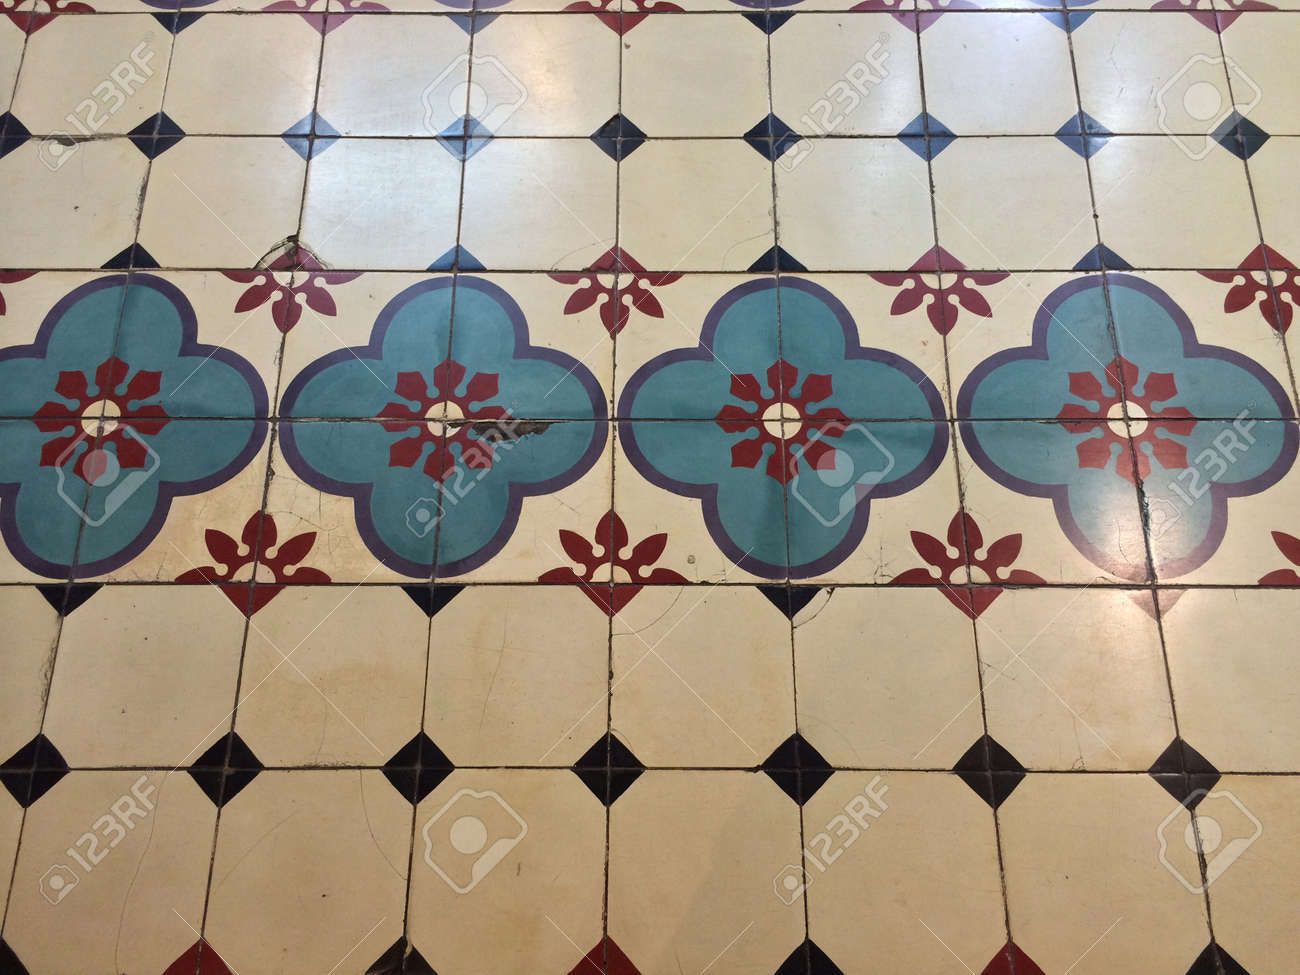 Floor Pattern Design Stock Photo, Picture nd oyalty Free Image ... - ^